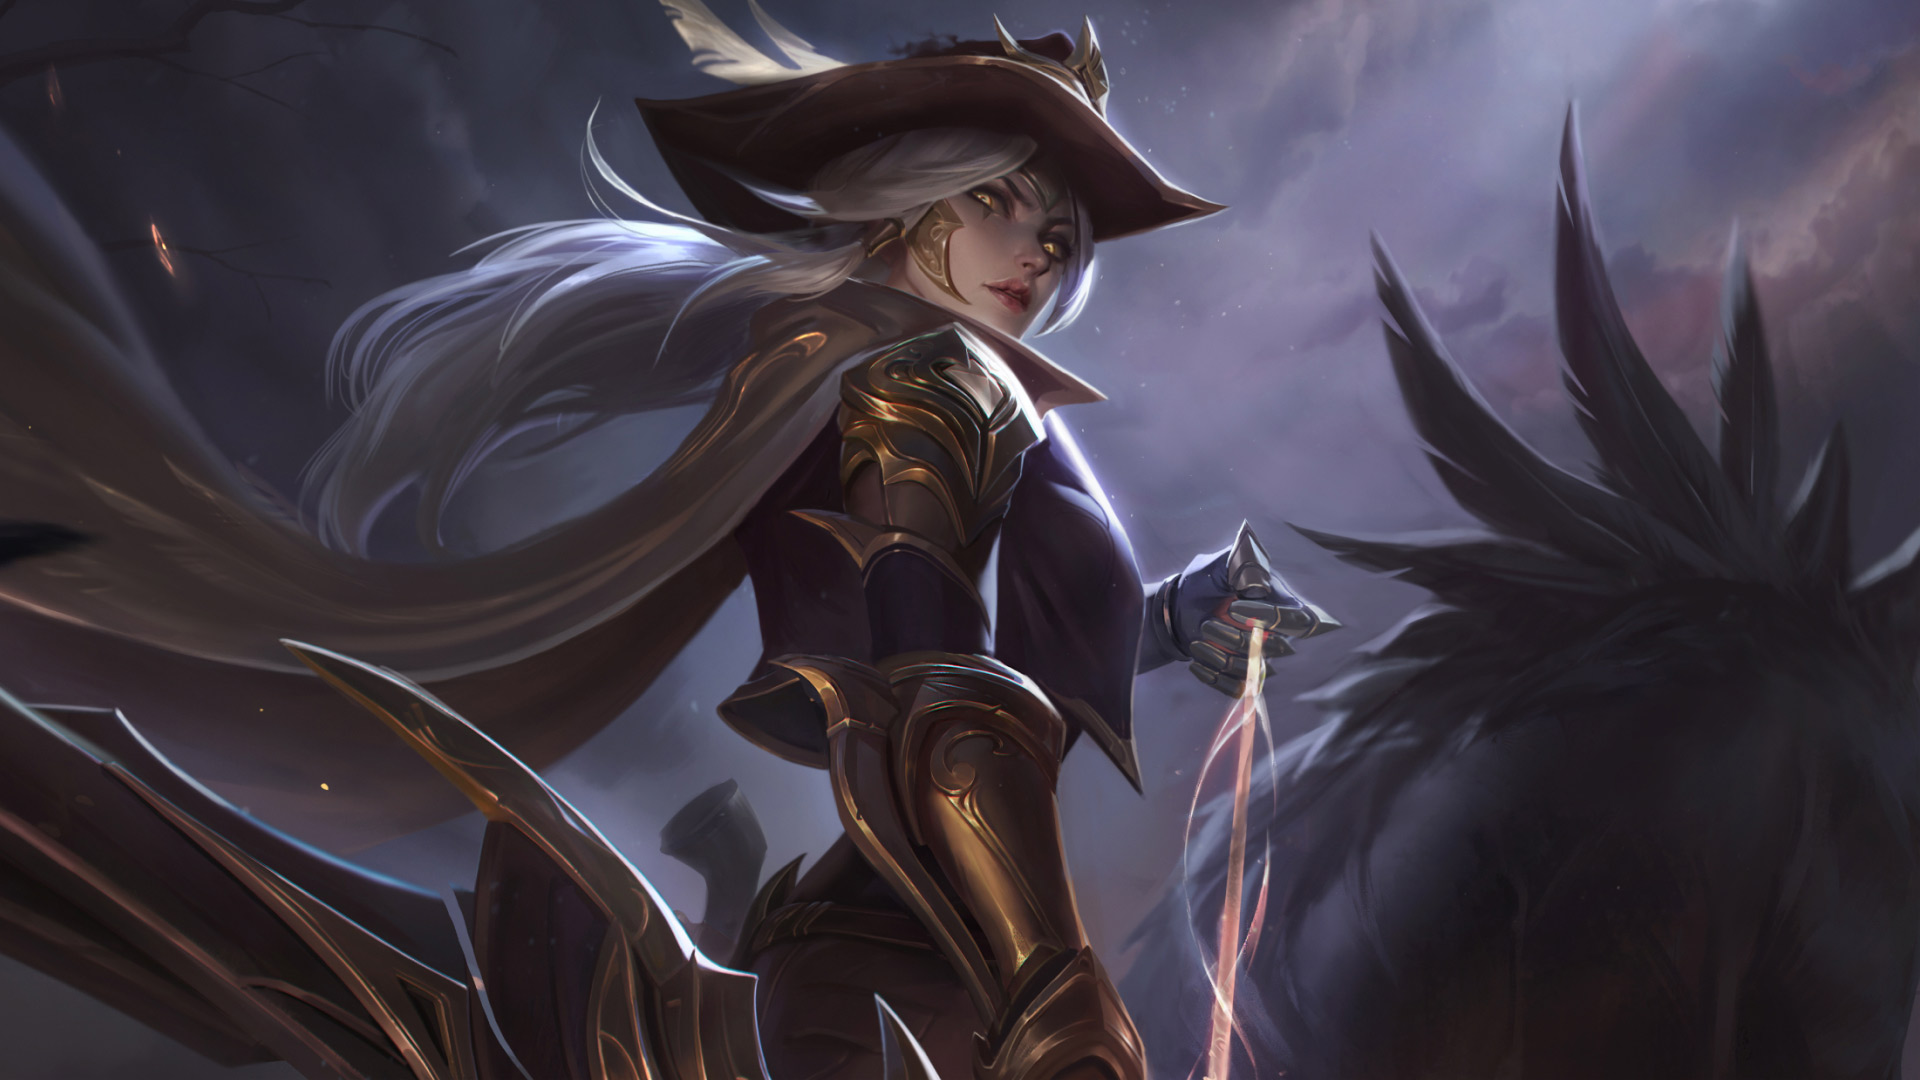 League of Legends Code of Conduct - Download League of Legends Code of Conduct for FREE - Free Cheats for Games